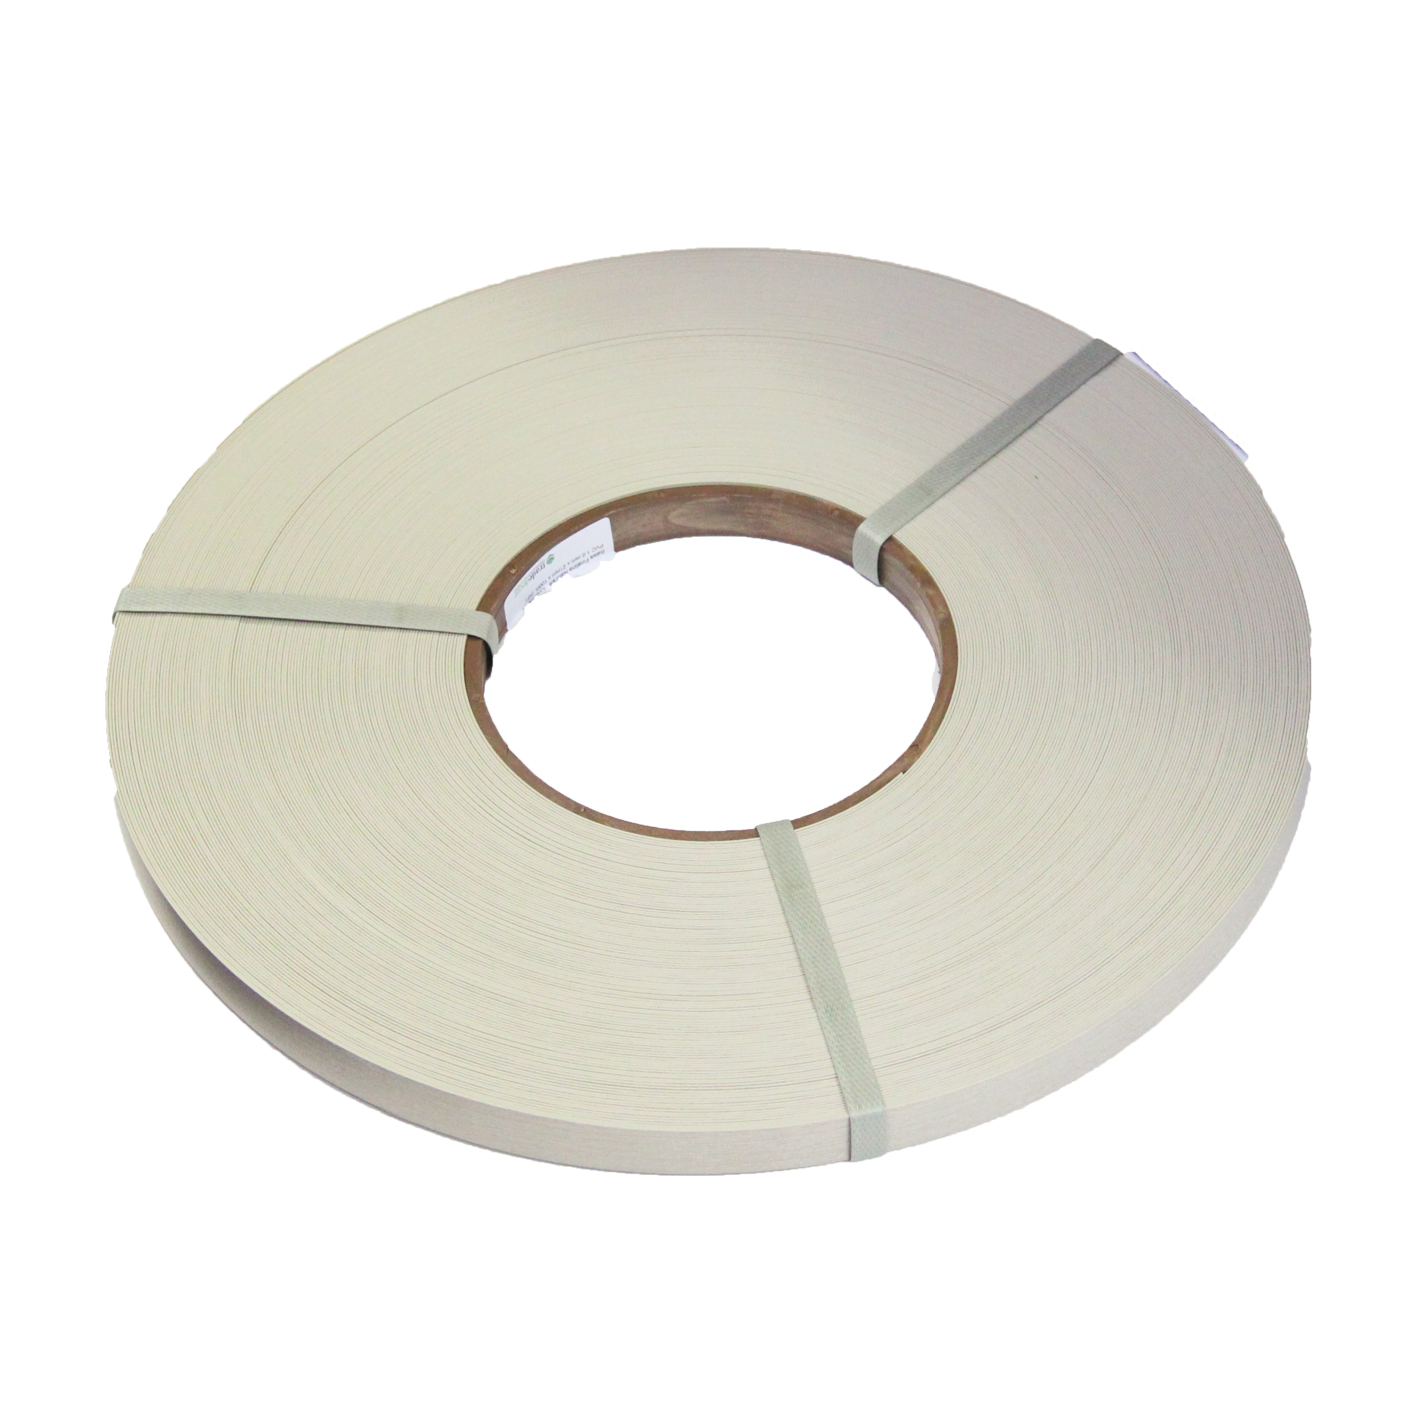 Almond Sand PVC Edging 21x1mm - 100m